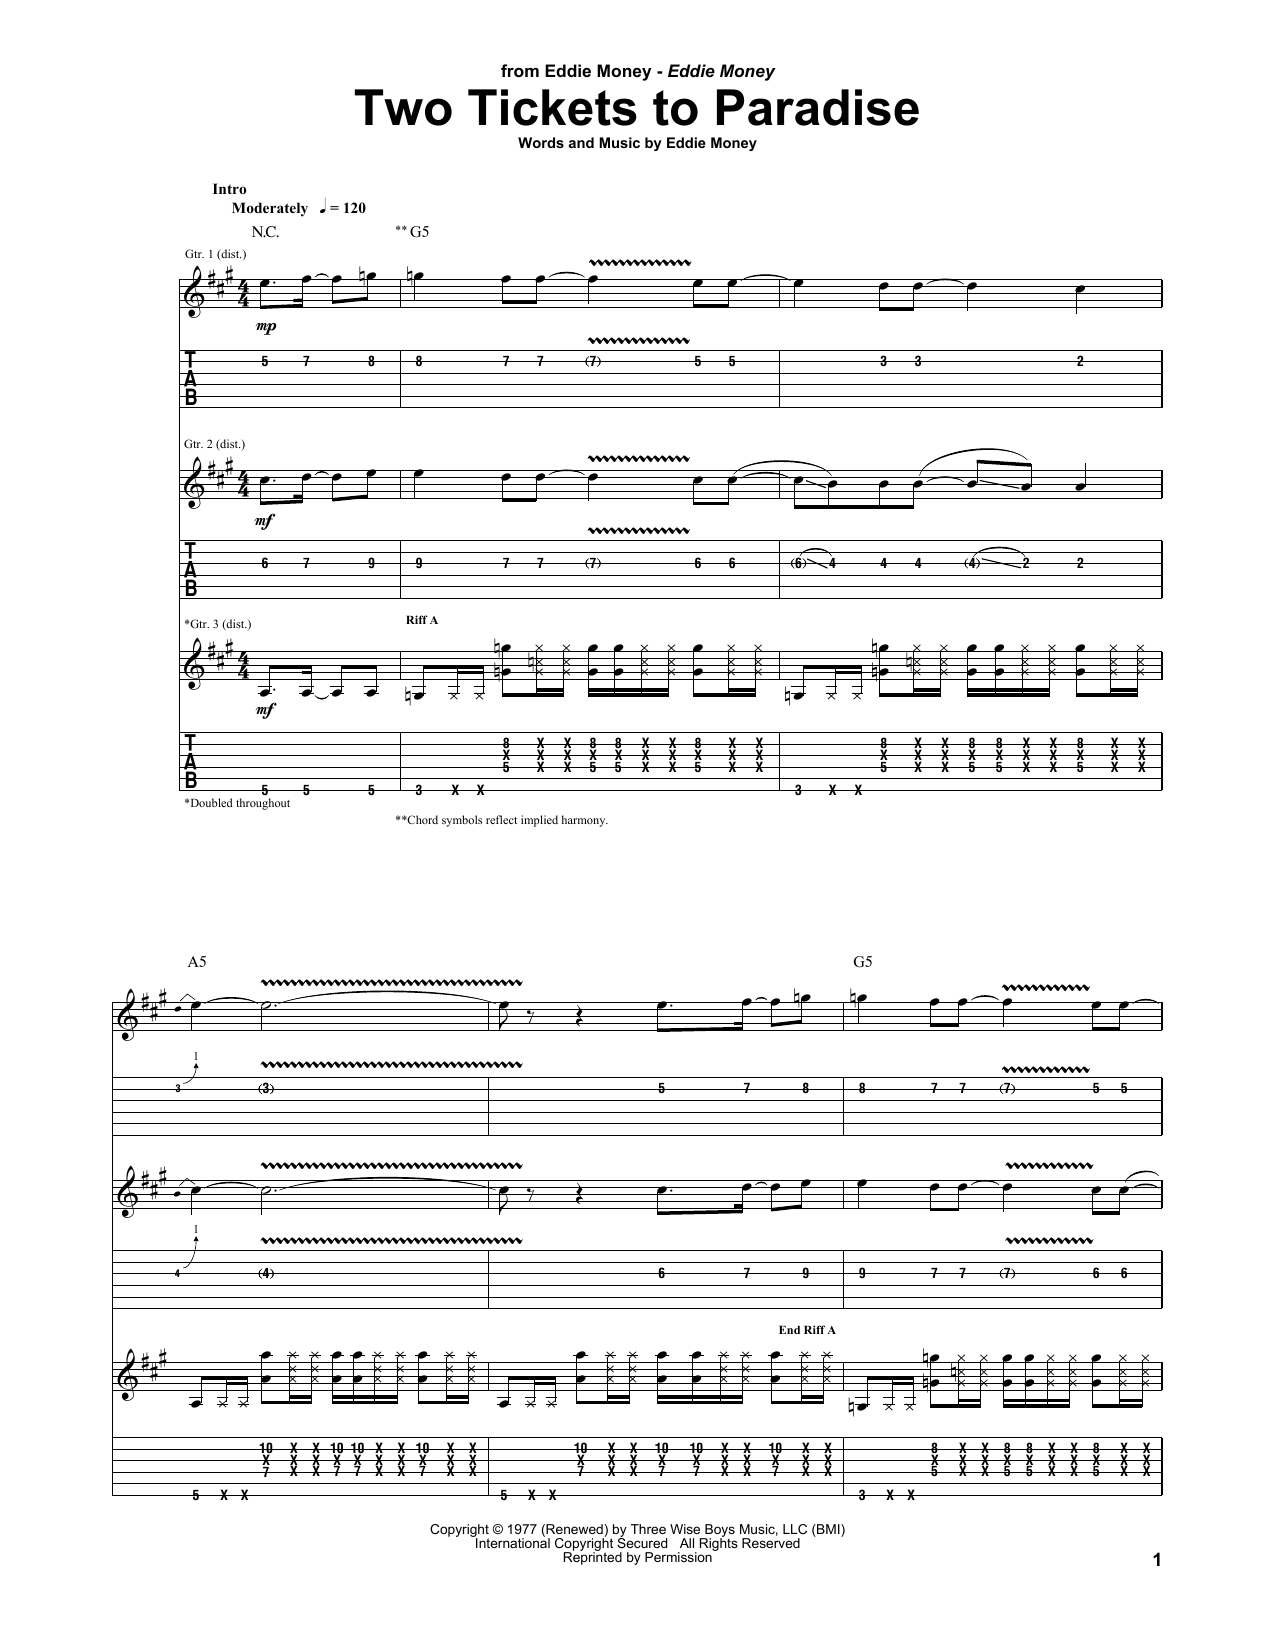 Eddie Money Two Tickets To Paradise sheet music notes and chords. Download Printable PDF.